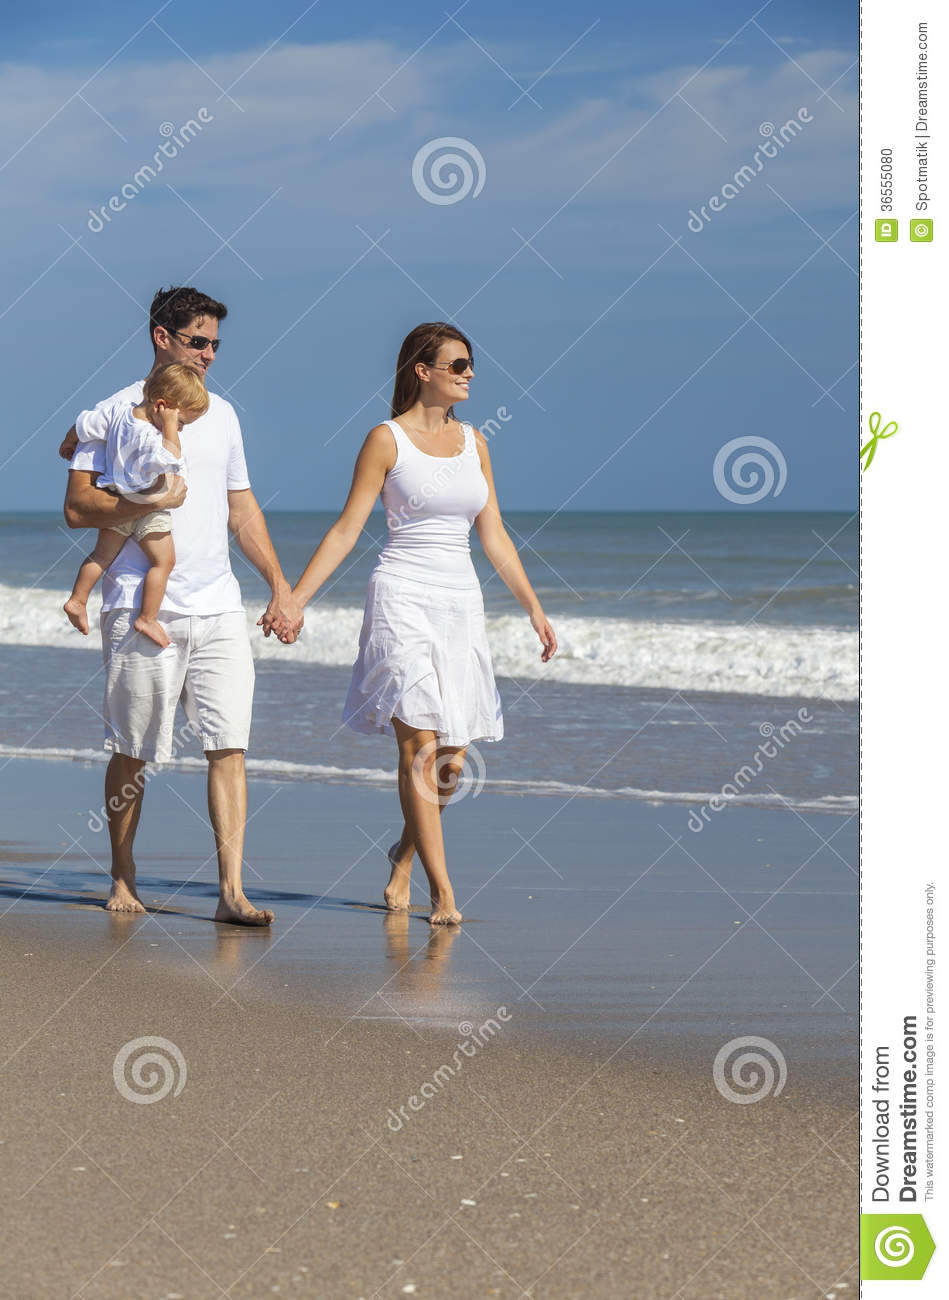 42054c0b2f51 Man and women romantic couple in white clothes holding hands walking  holding baby child on a deserted tropical beach with bright clear blue sky